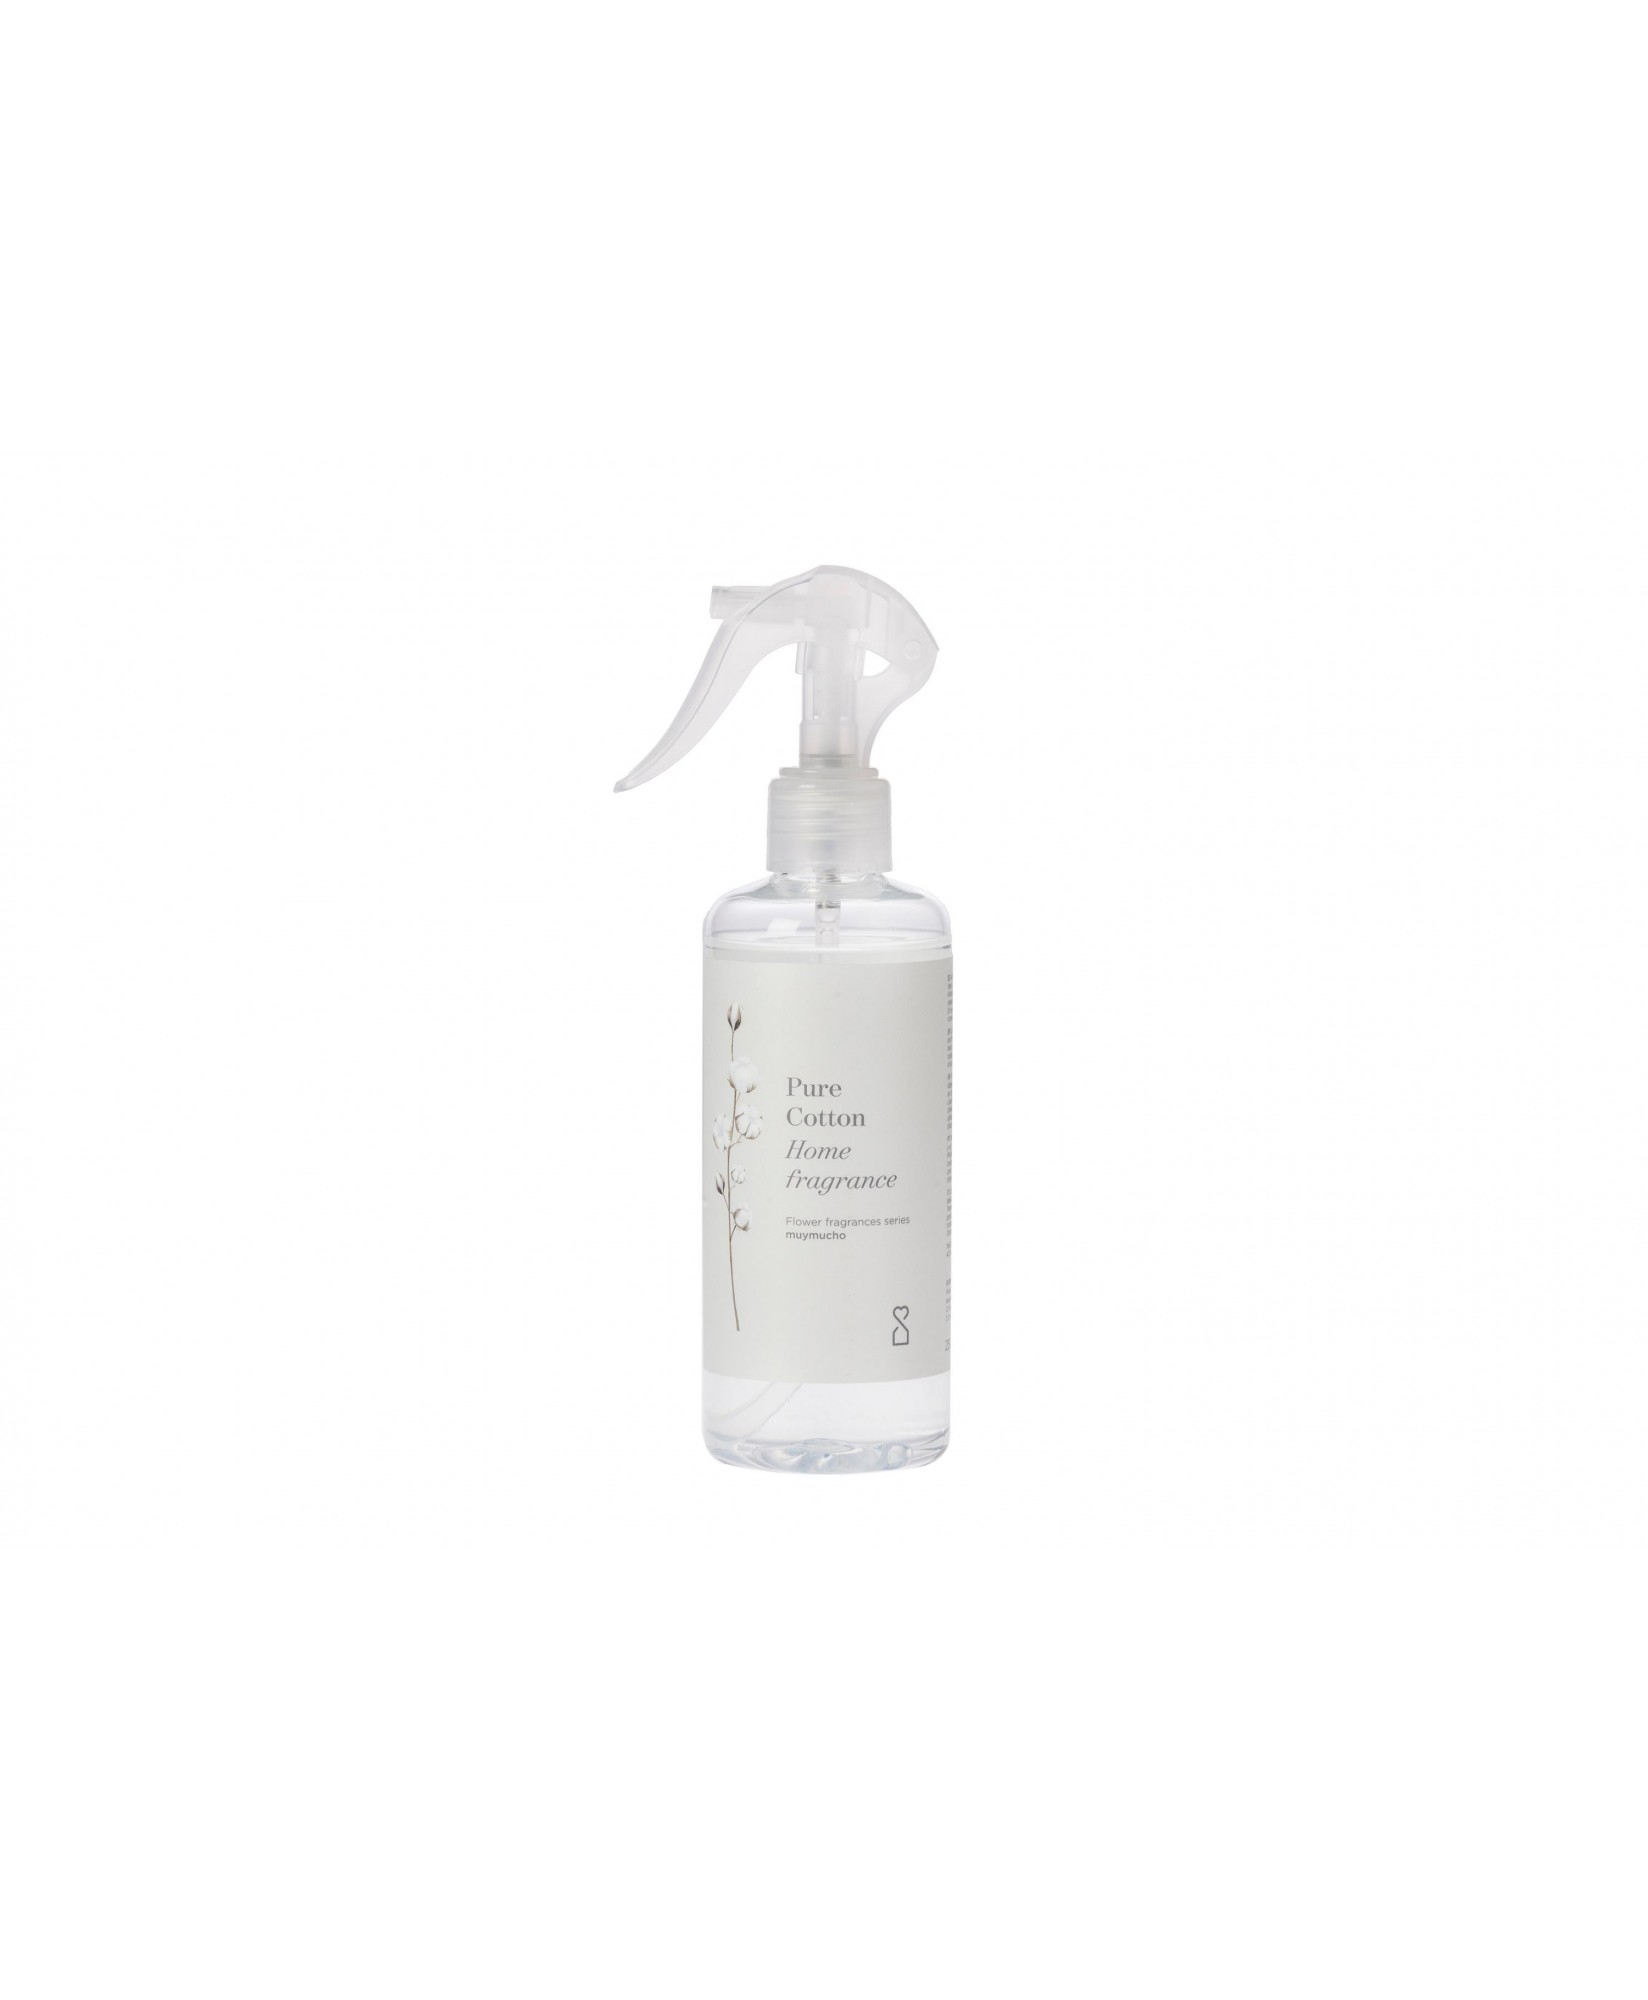 AMBIENTADOR TEXTIL  PURE COTTON 500ml AMBIENTADOR TEXTIL  PURE COTTON 500ml